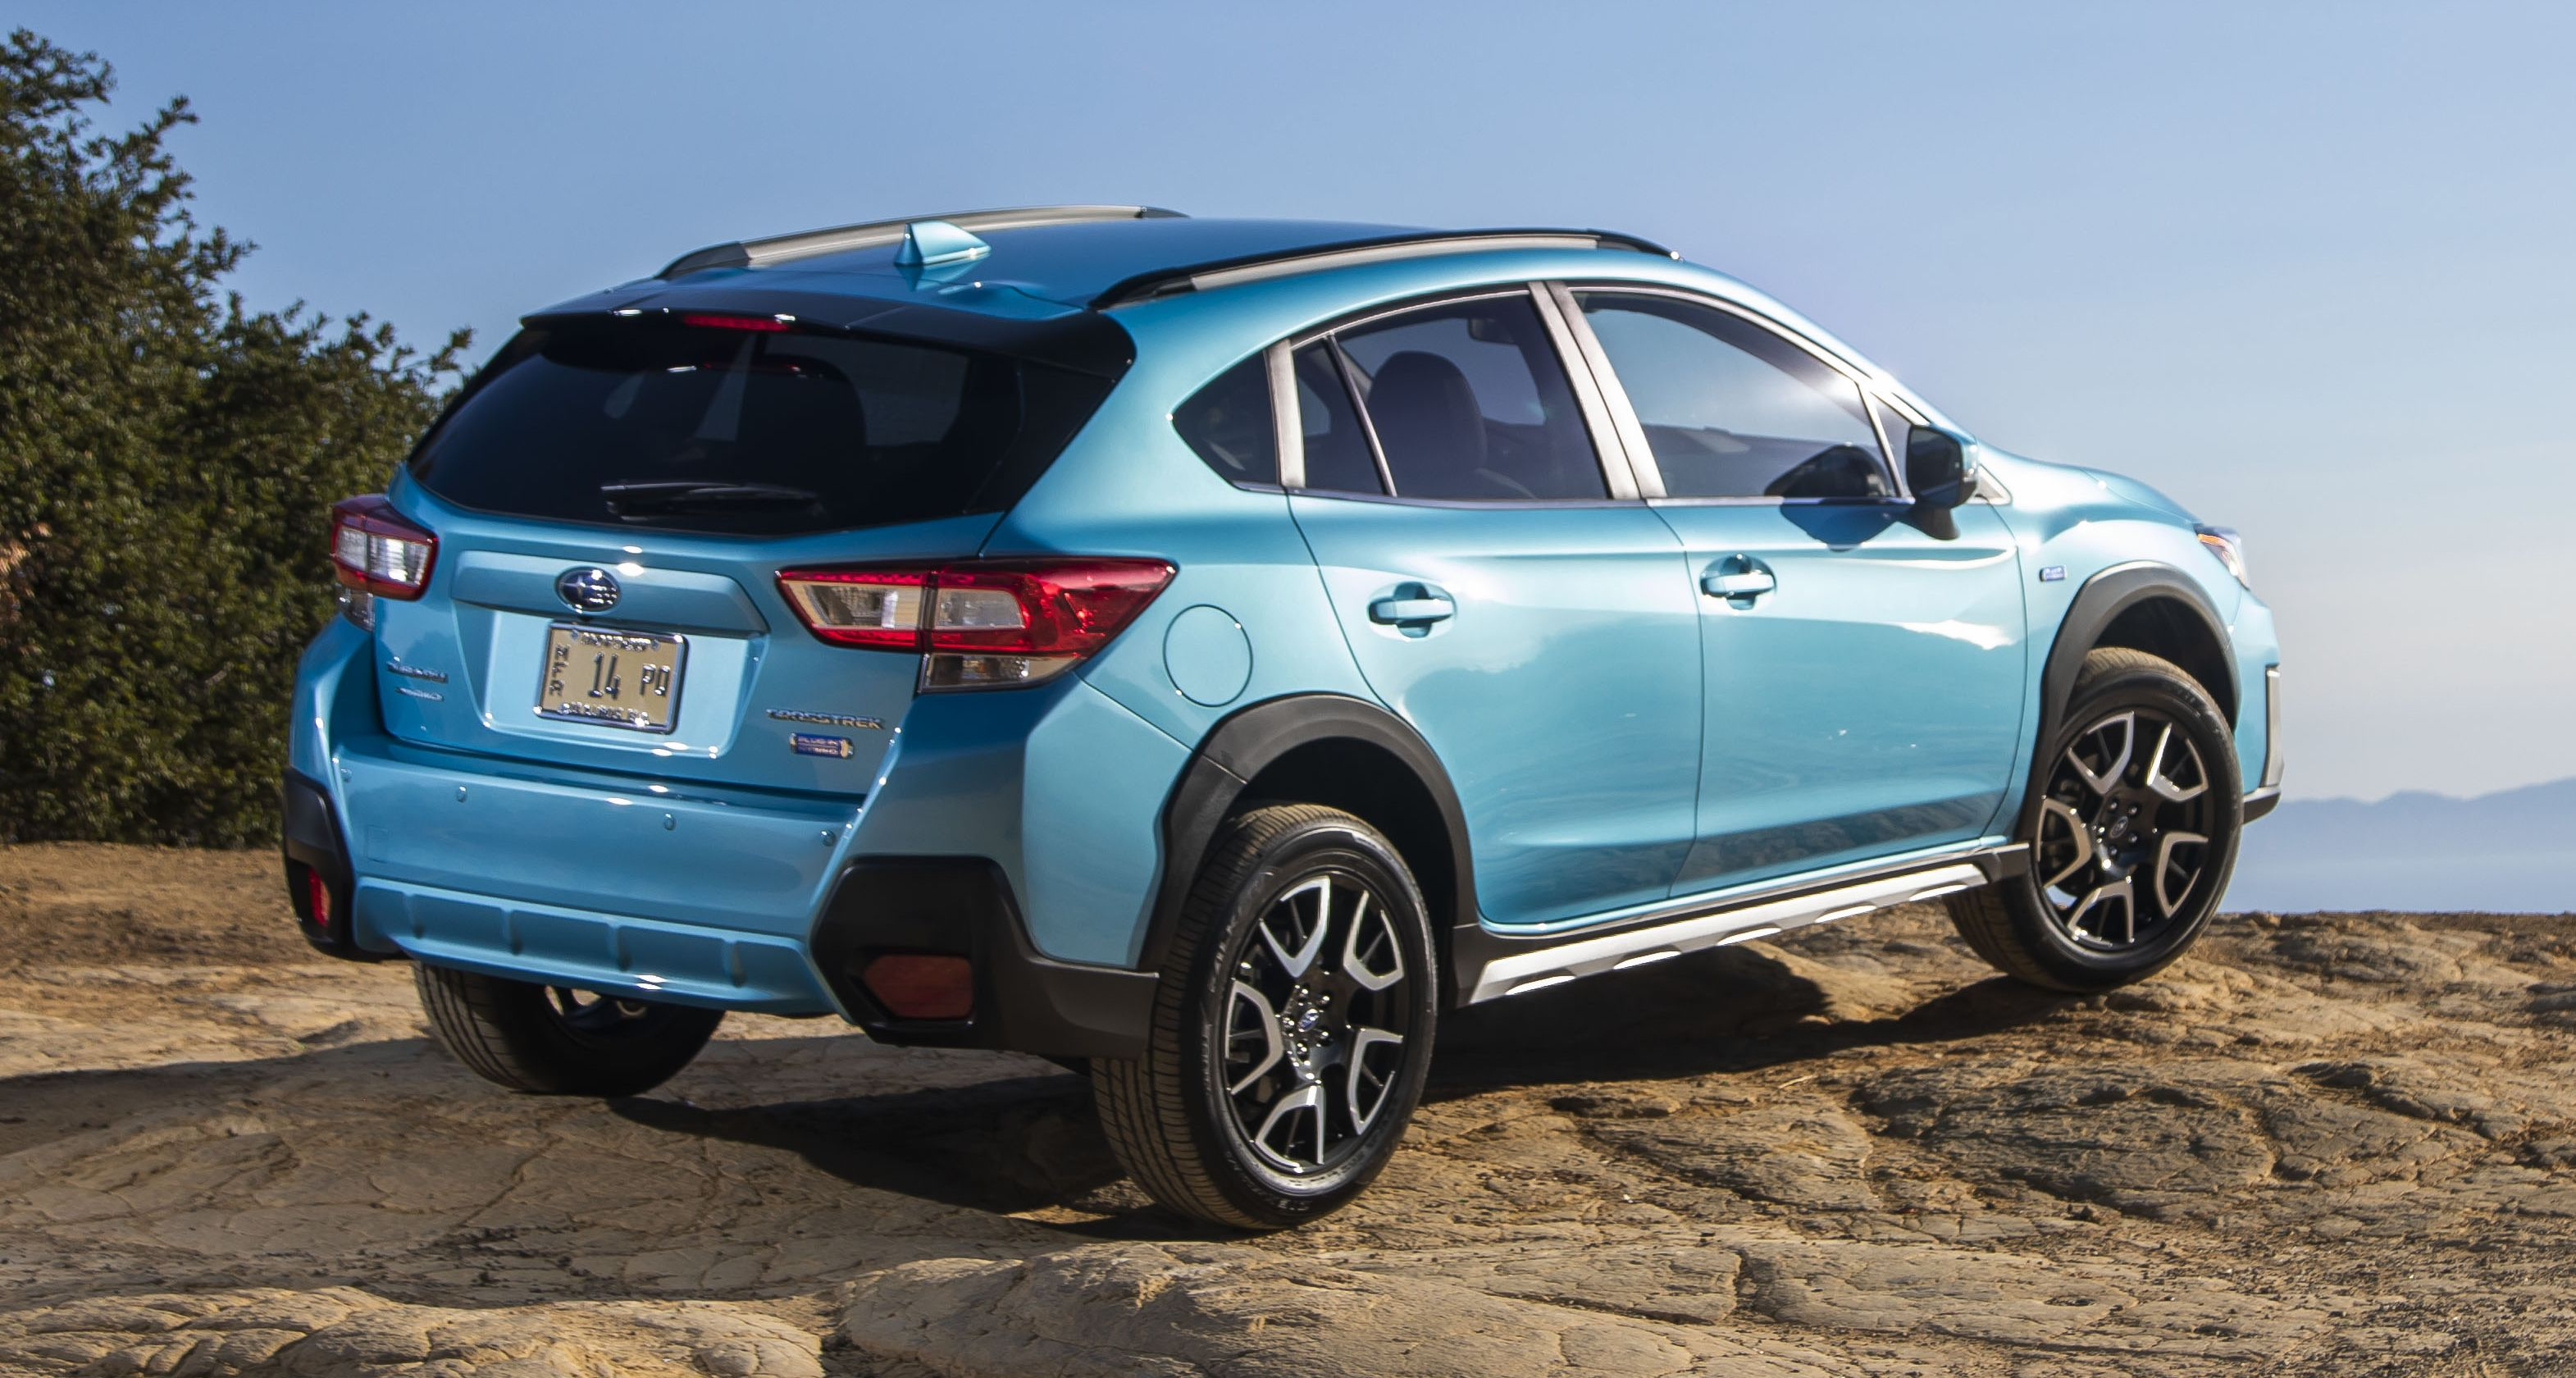 2019 Subaru Xv Crosstrek Hybrid Officially Revealed Brand S First Plug In Model